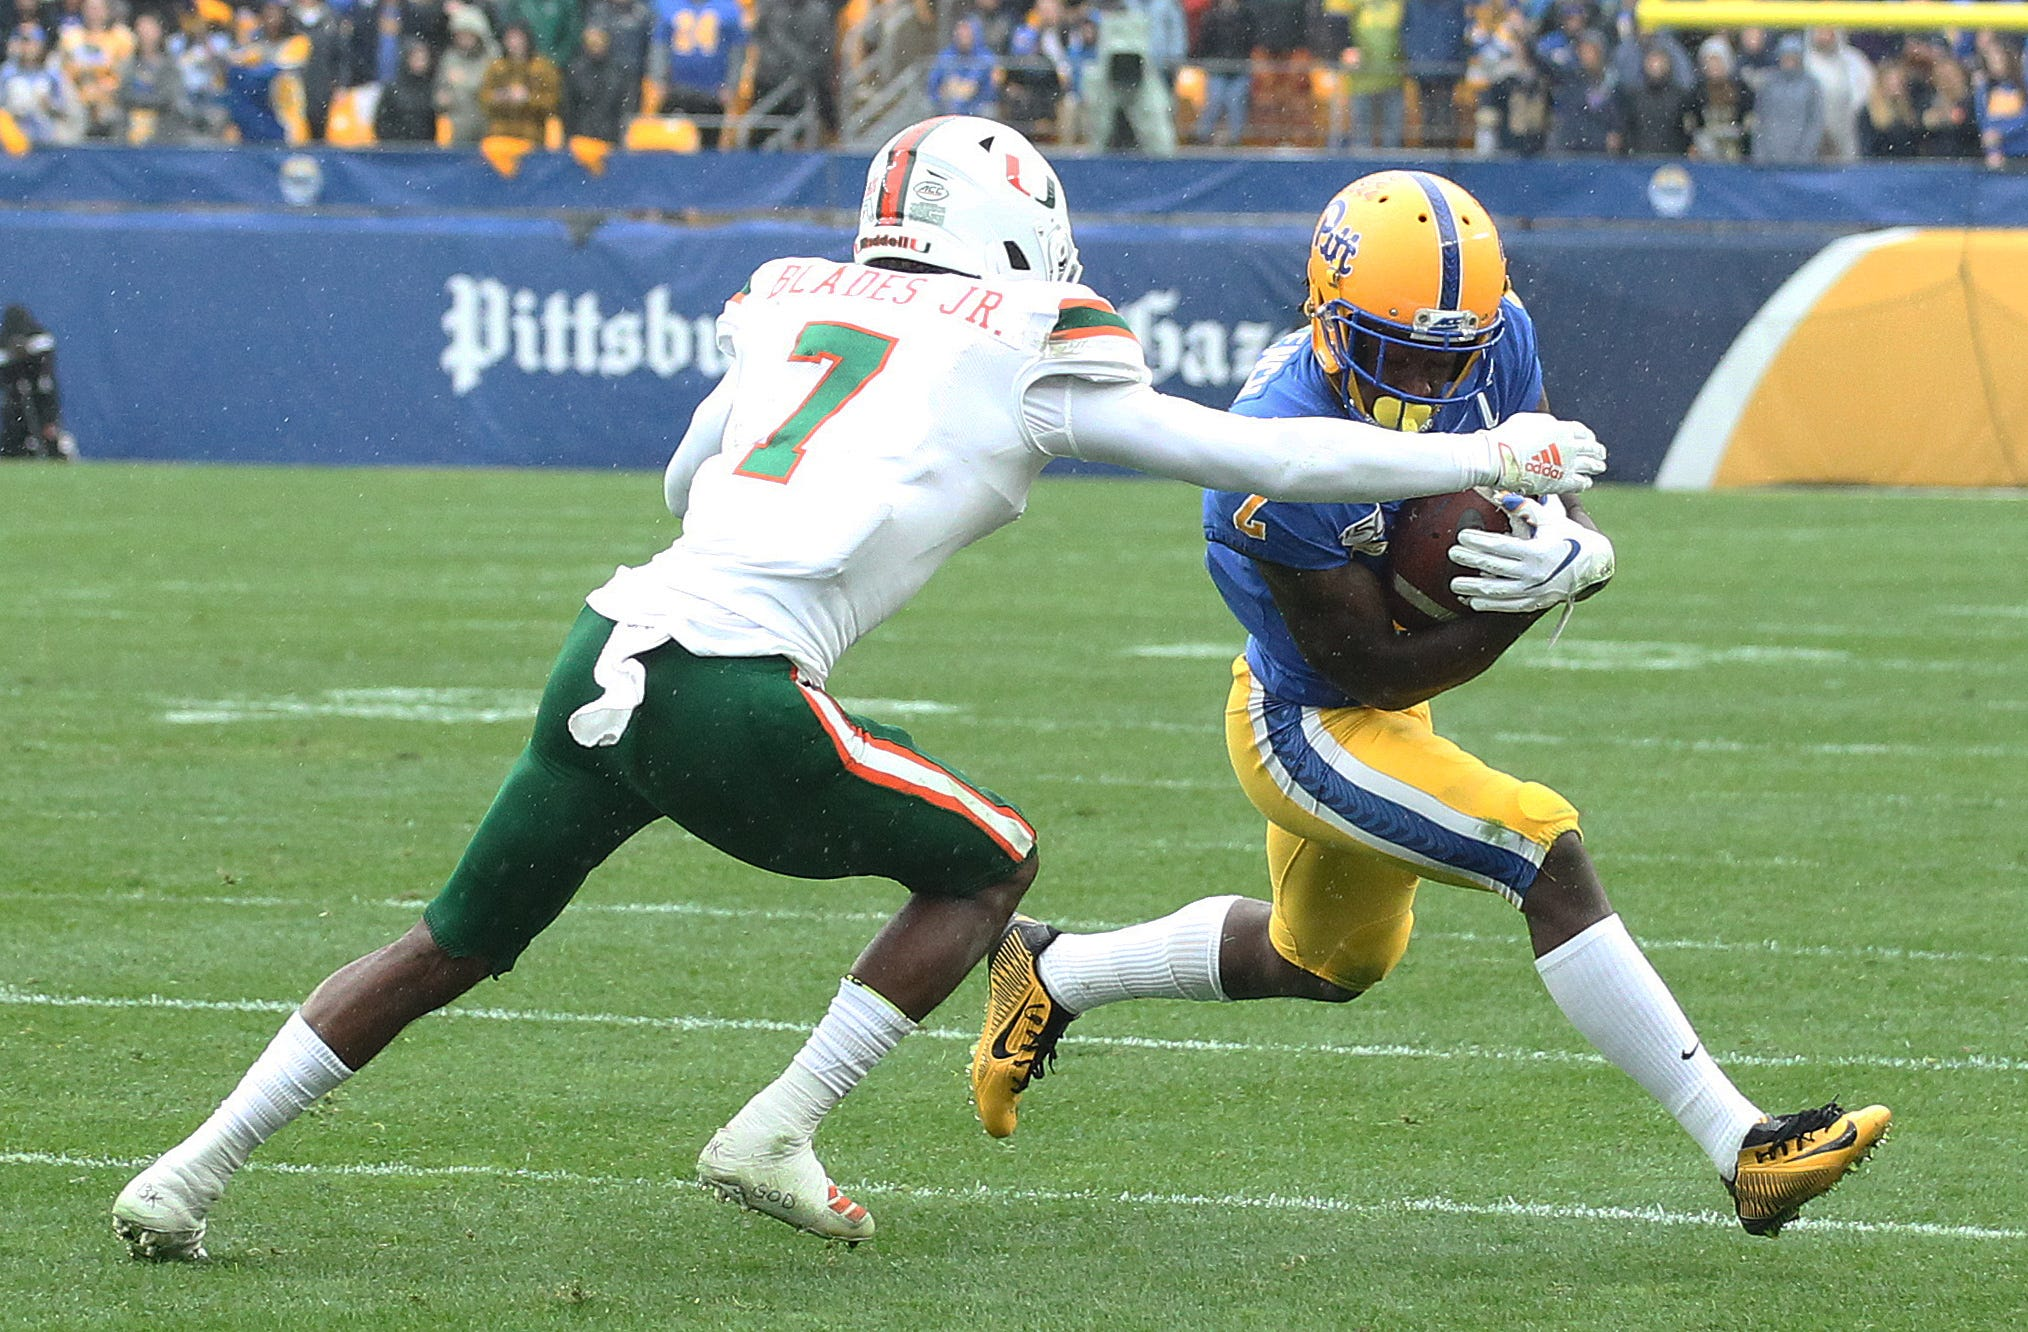 College football COVID update: Miami's Al Blades Jr. out for season with myocarditis